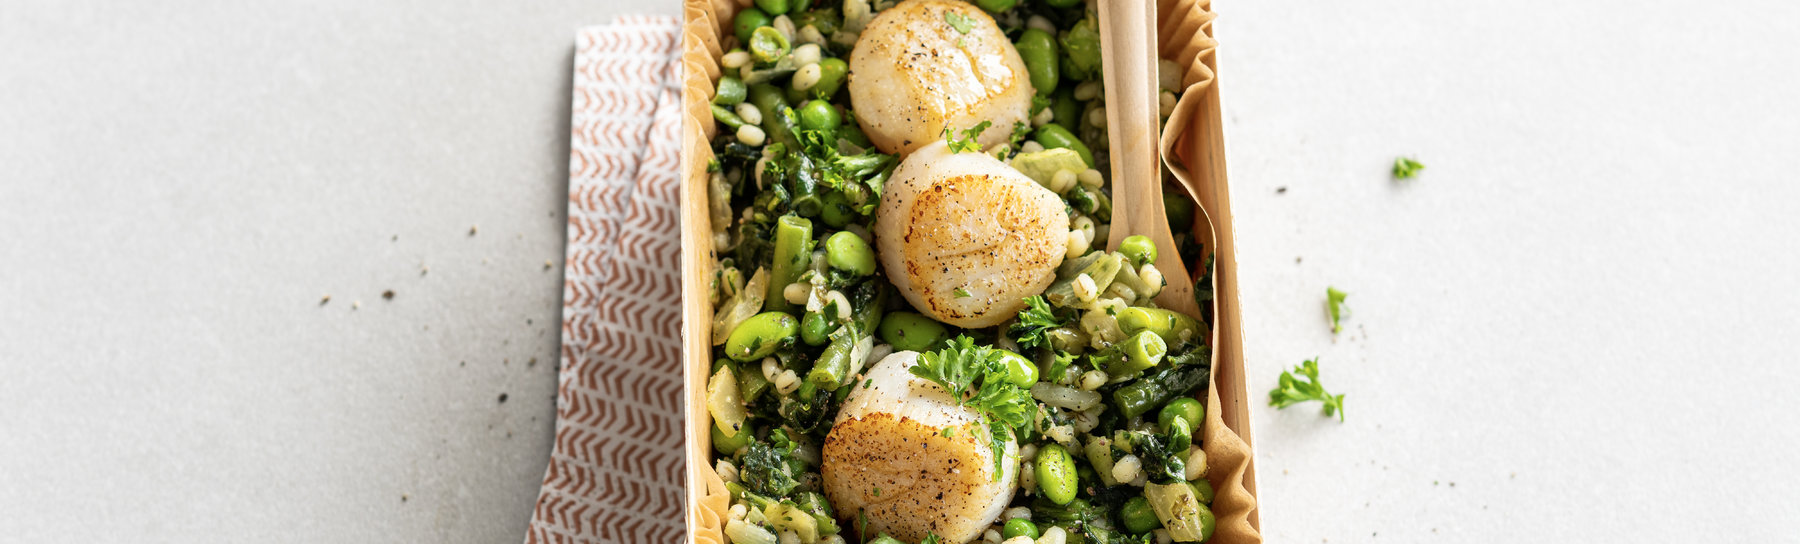 veggie_mix_nordic_style_with_scallops